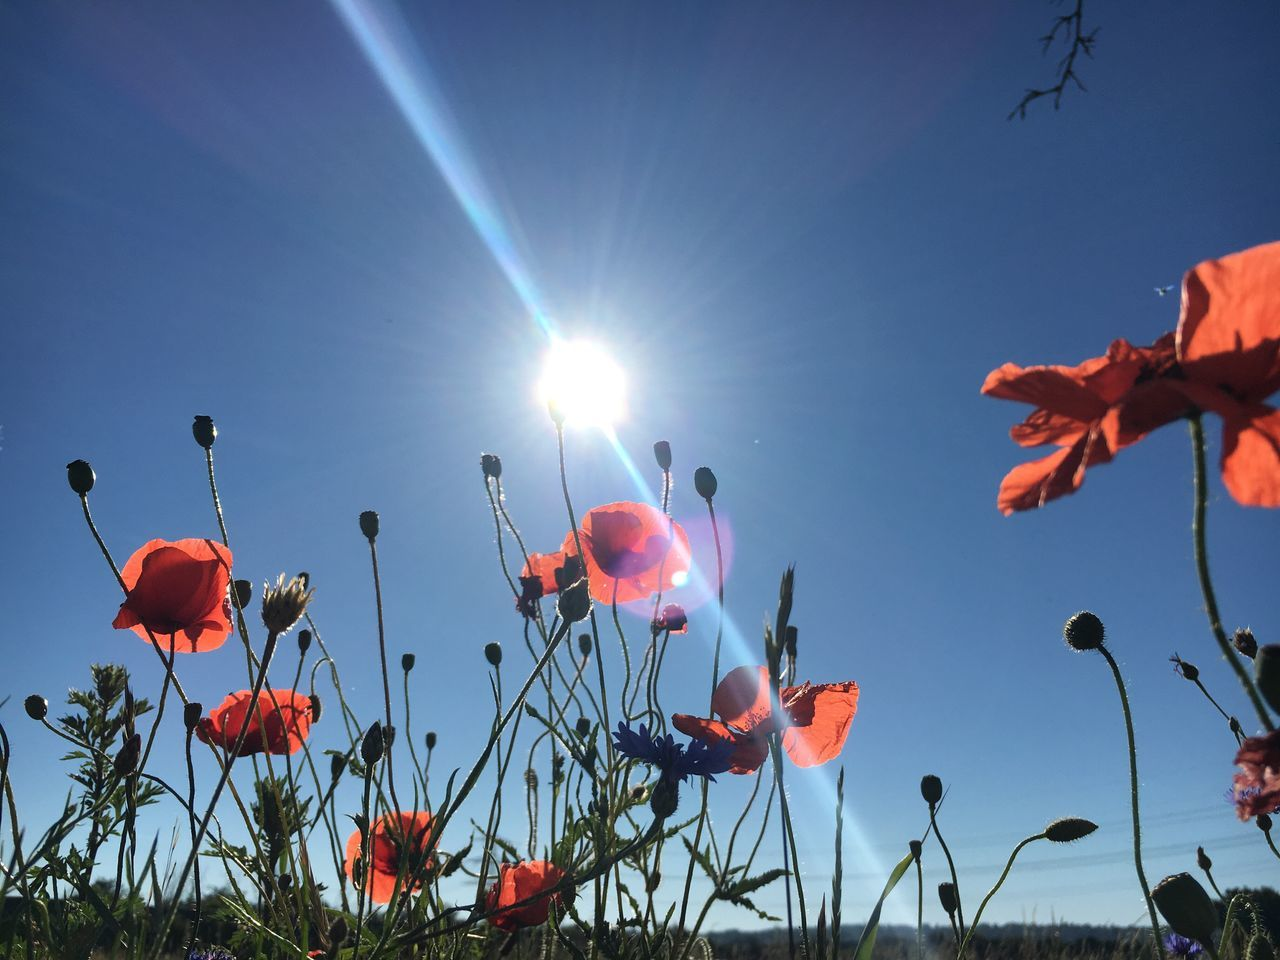 Growth Flower Nature Beauty In Nature Plant Fragility Sun Sunlight No People Freshness Low Angle View Petal Day Outdoors Sky Close-up Blooming Flower Head Poppy Poppies  Poppy Flowers